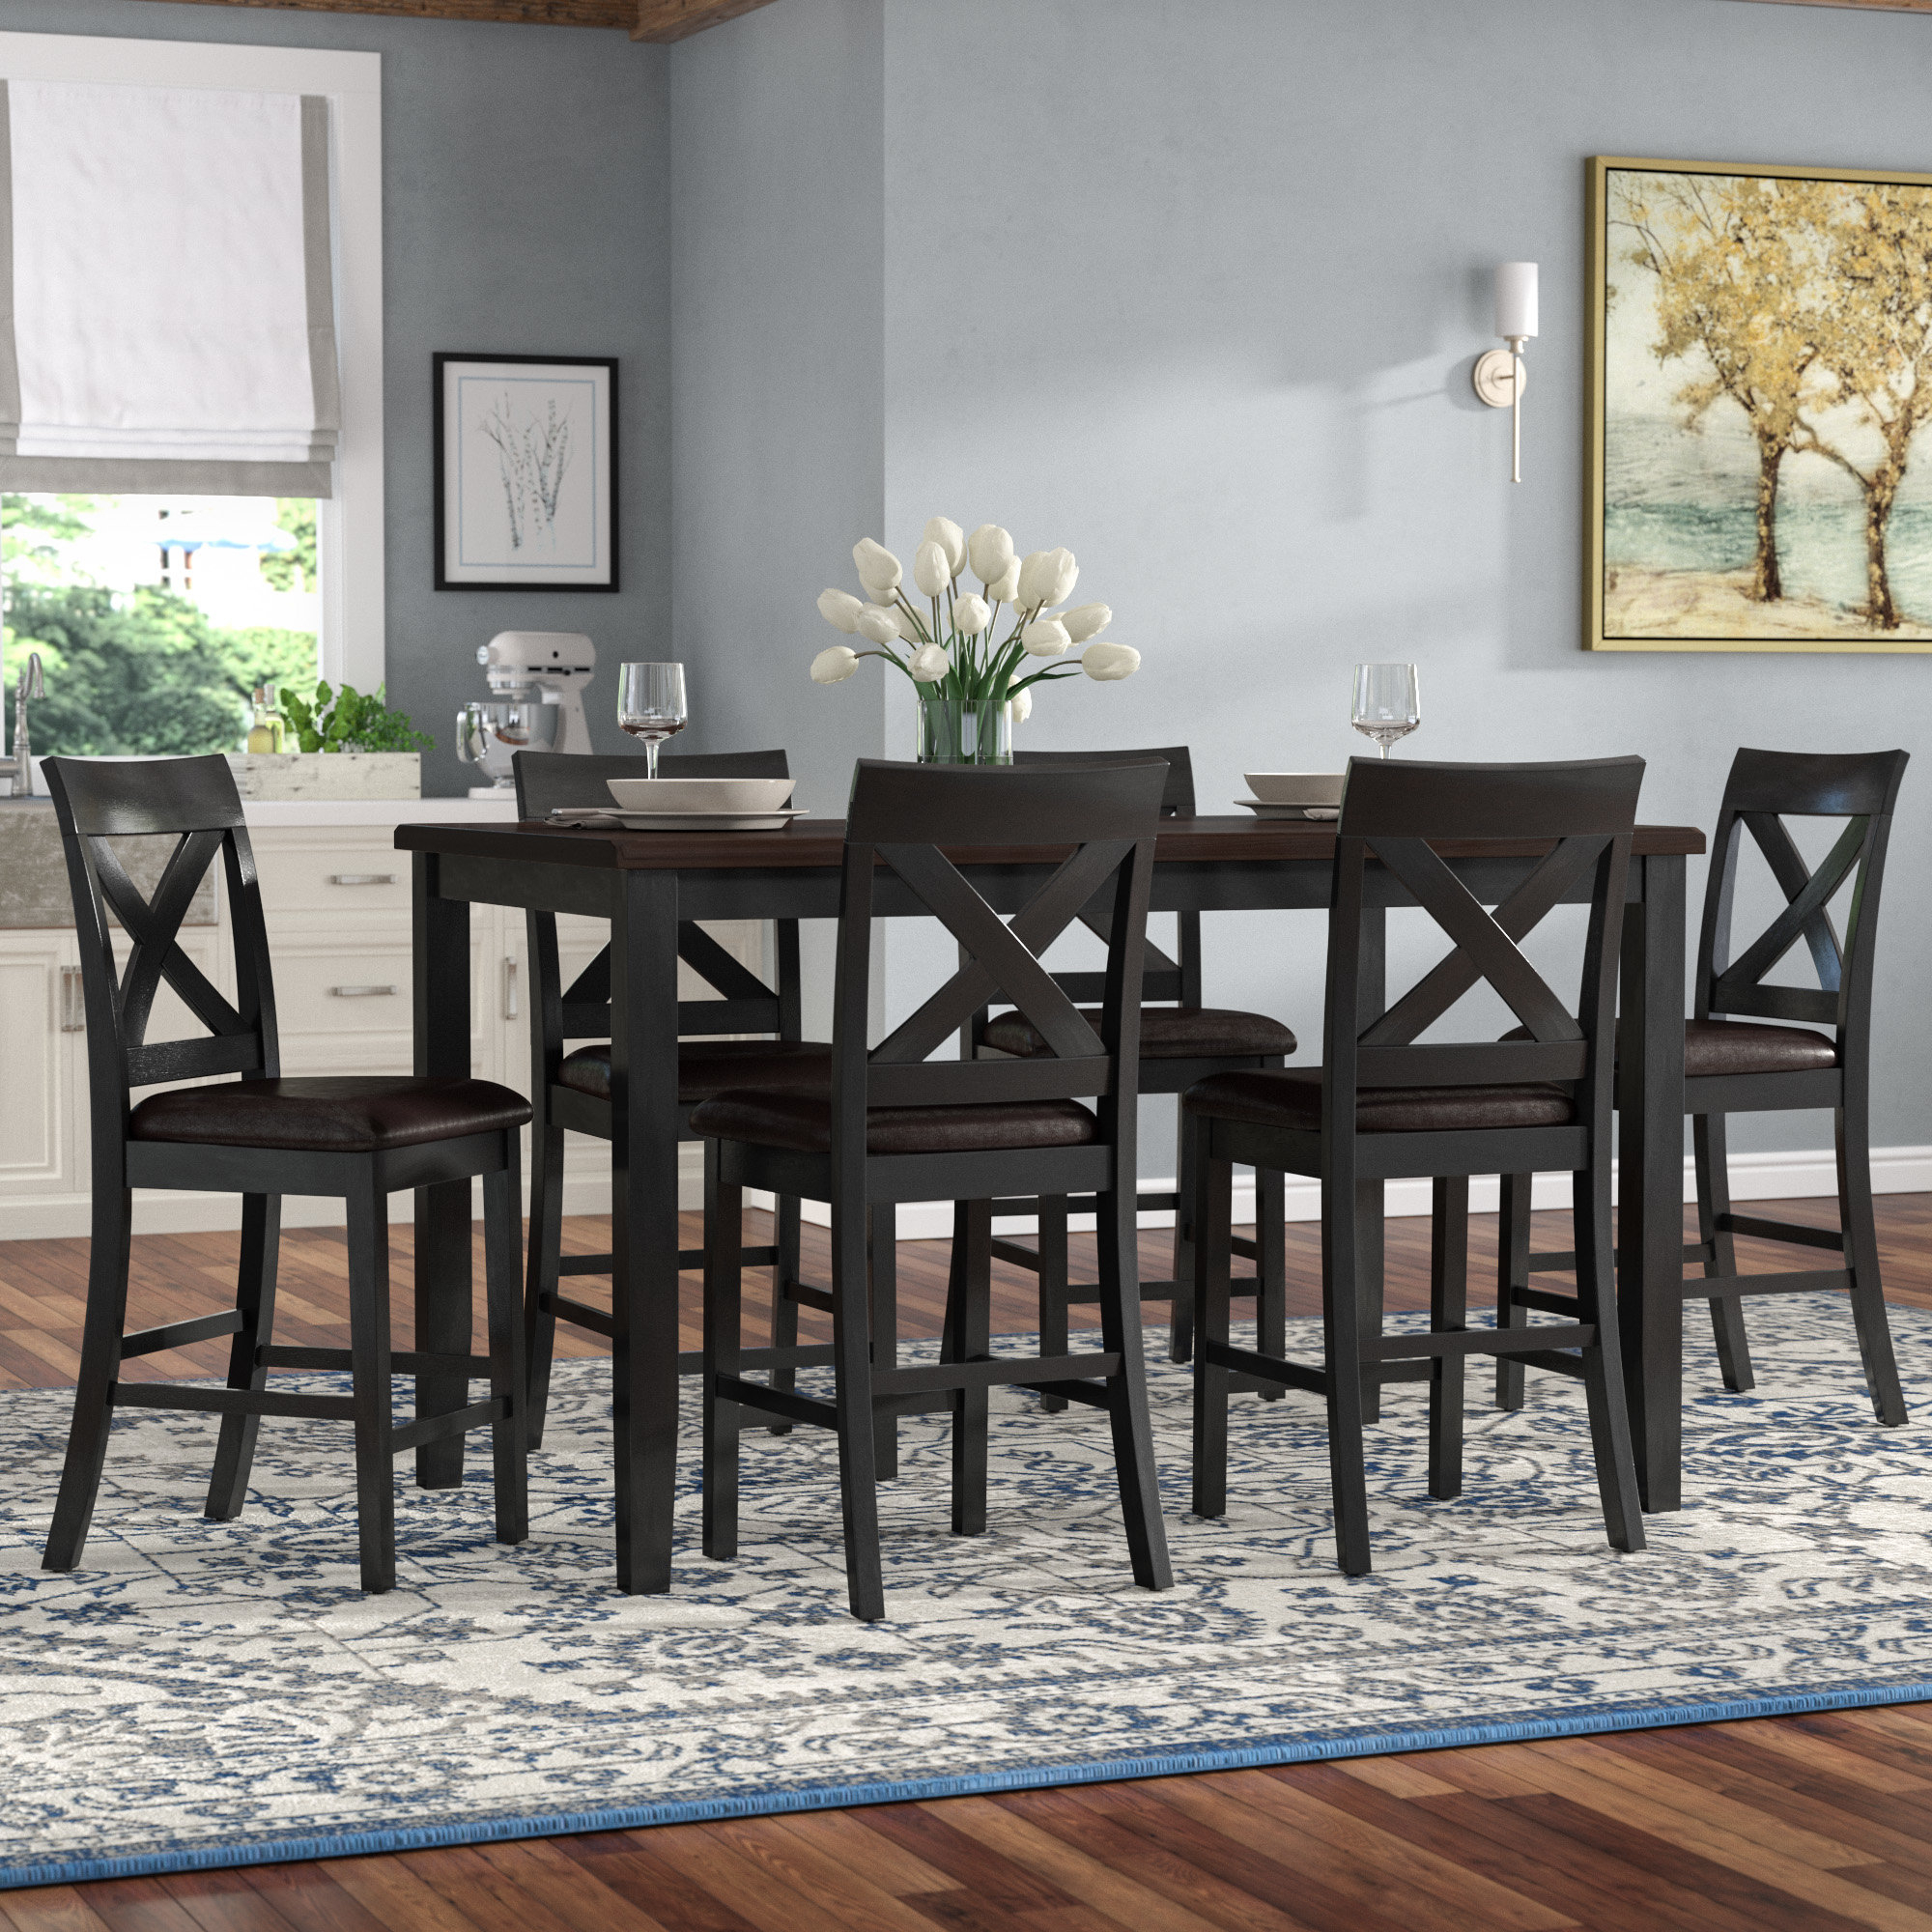 Wayfair With Regard To Well Known Springfield 3 Piece Dining Sets (View 9 of 20)